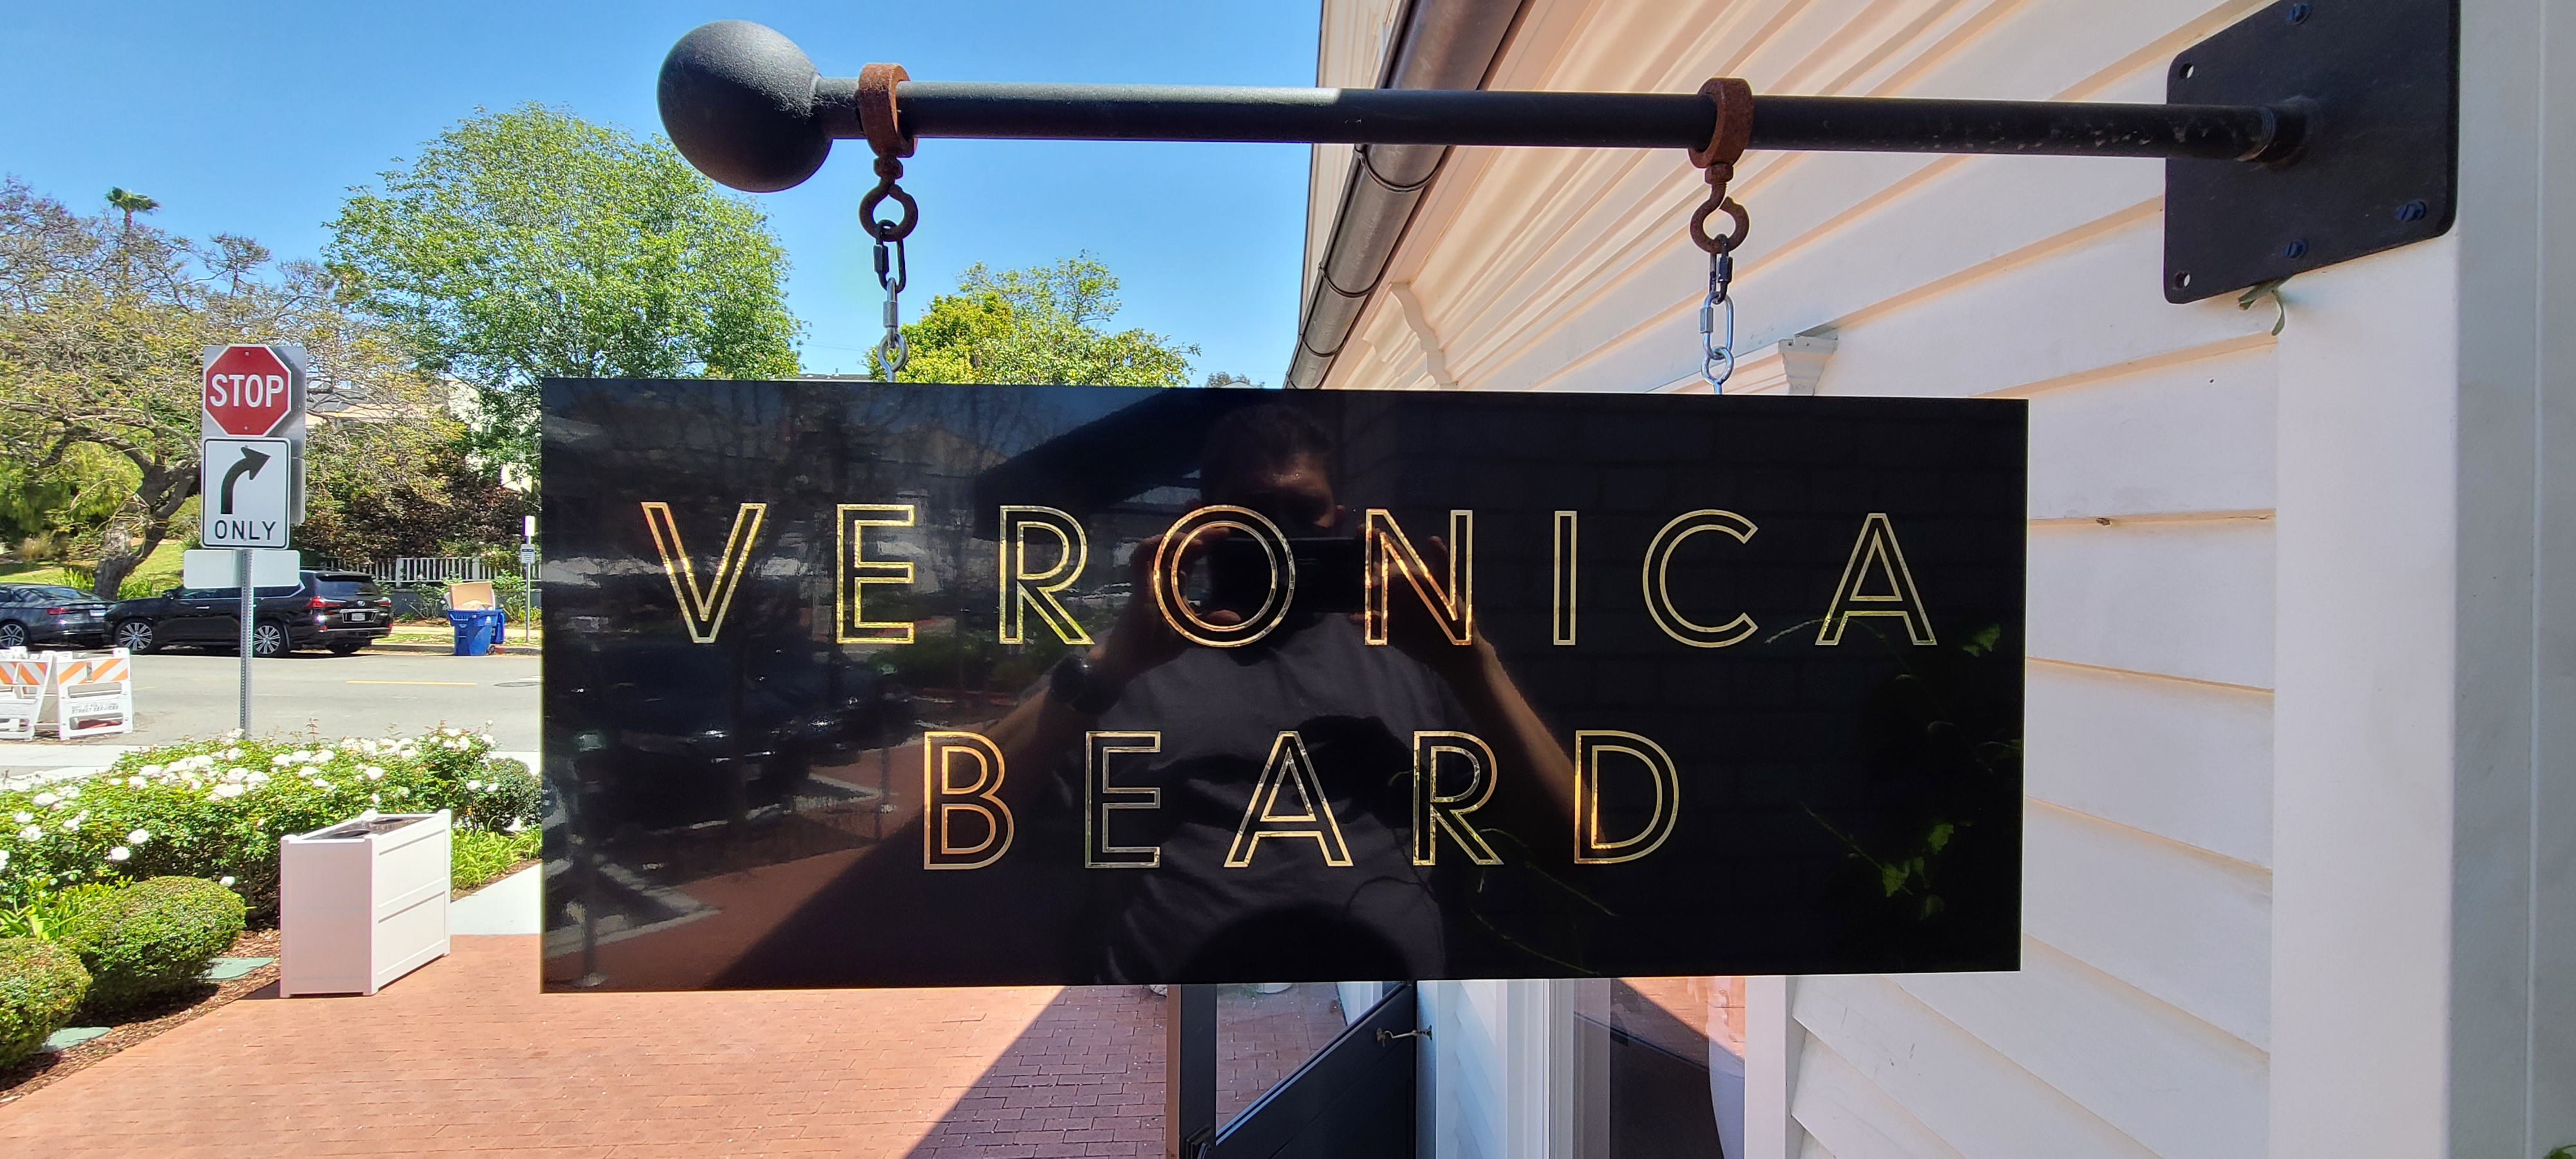 With more shoppers going out and about, captivating signage is a must. Like these blade signs for Veronica Beard in Pacific Palisades.